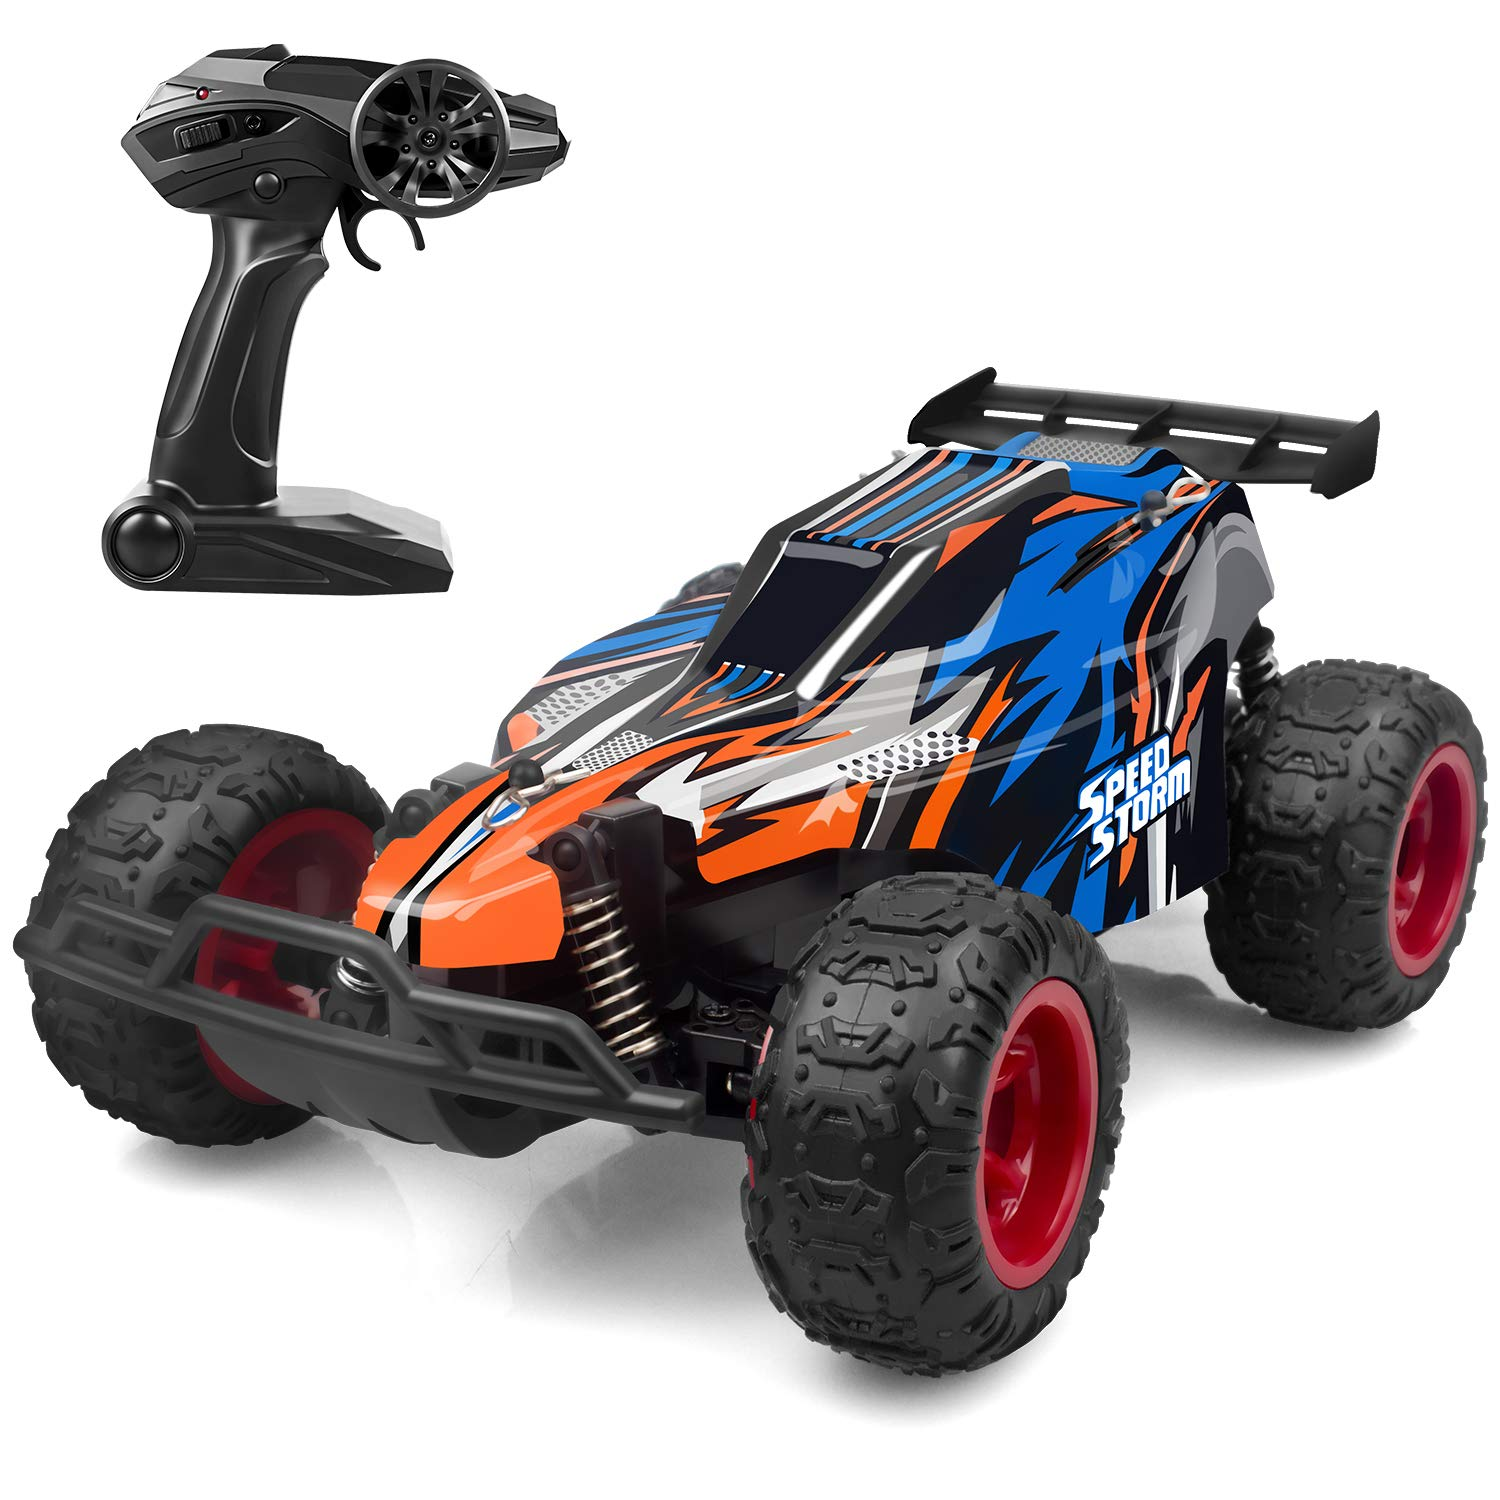 IMDEN 51654194589 Remote Control Car